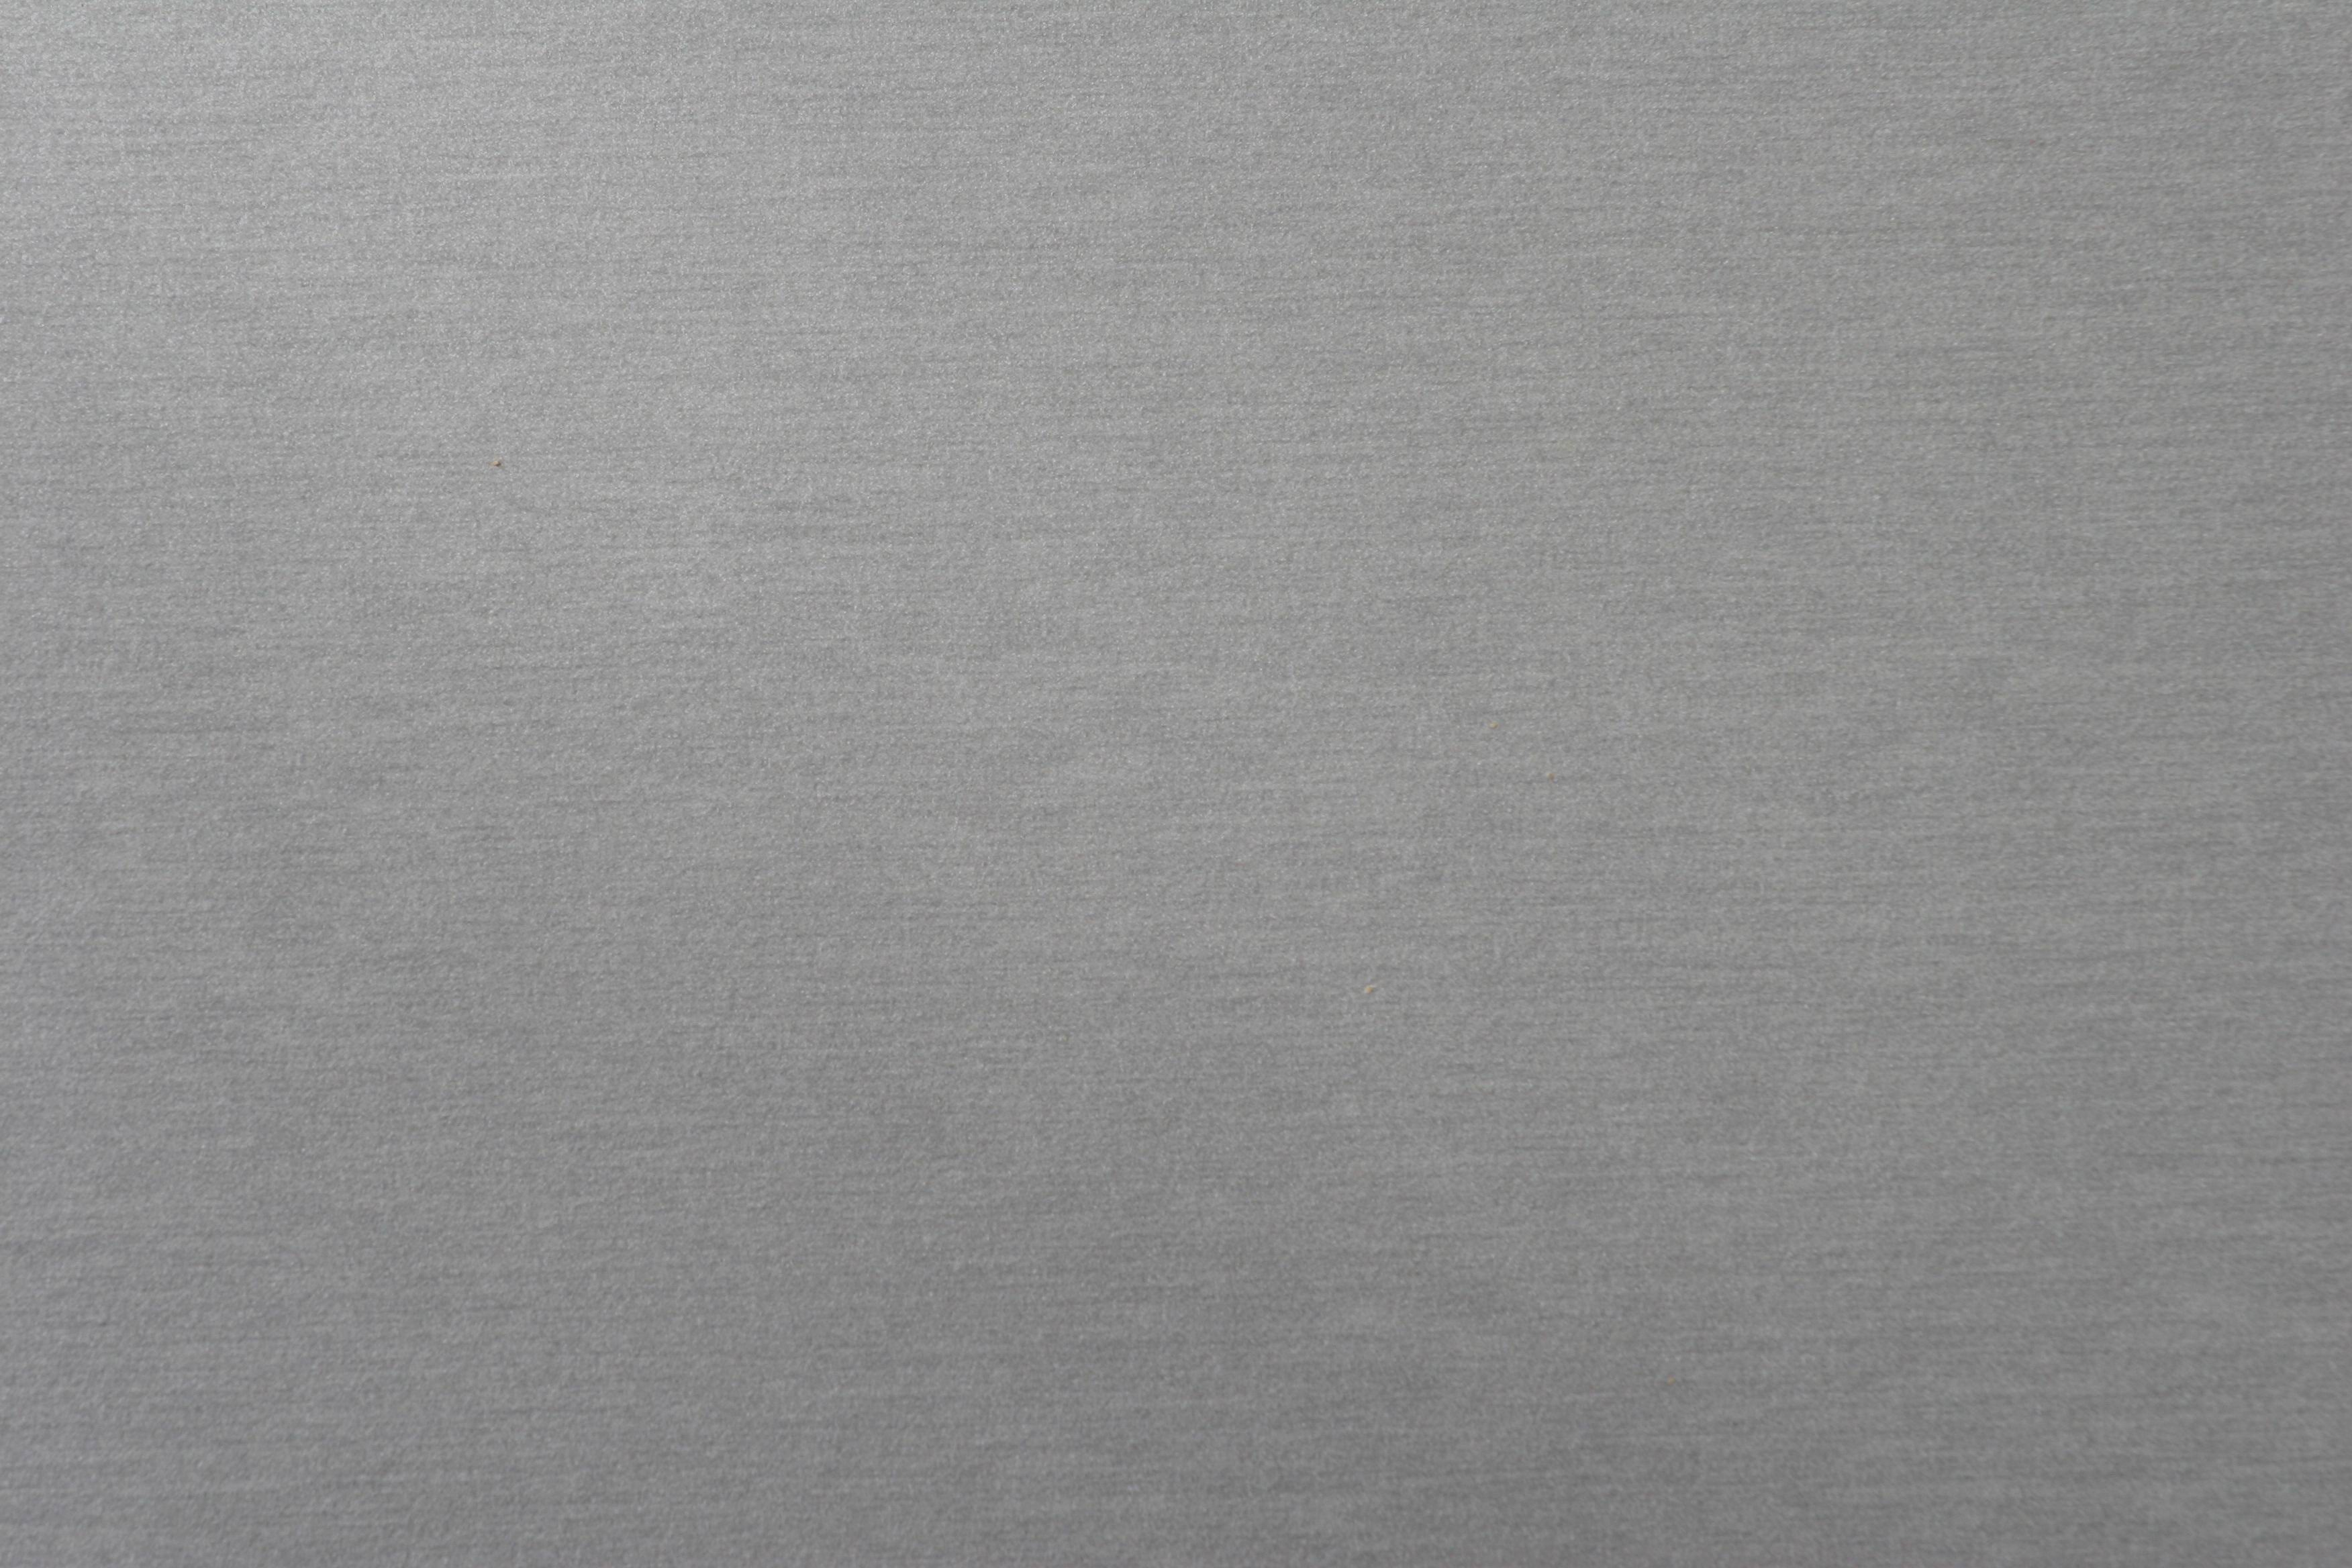 Aluminum Texture Background Download Aluminum Texture